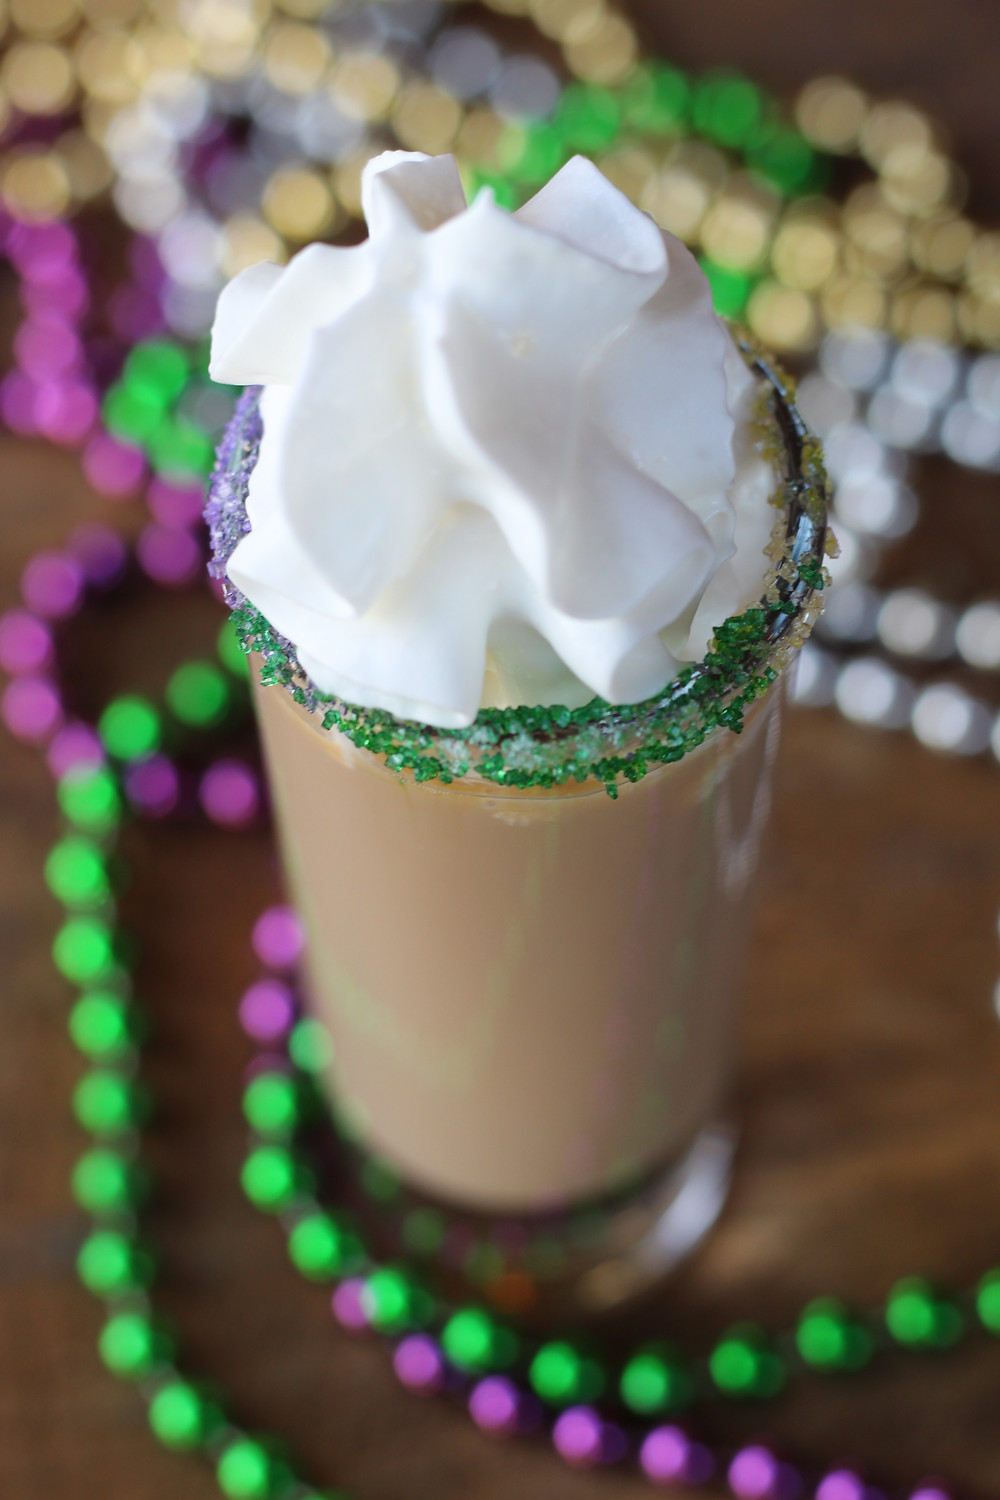 An image of a King Cake Shot, topped with whipped cream